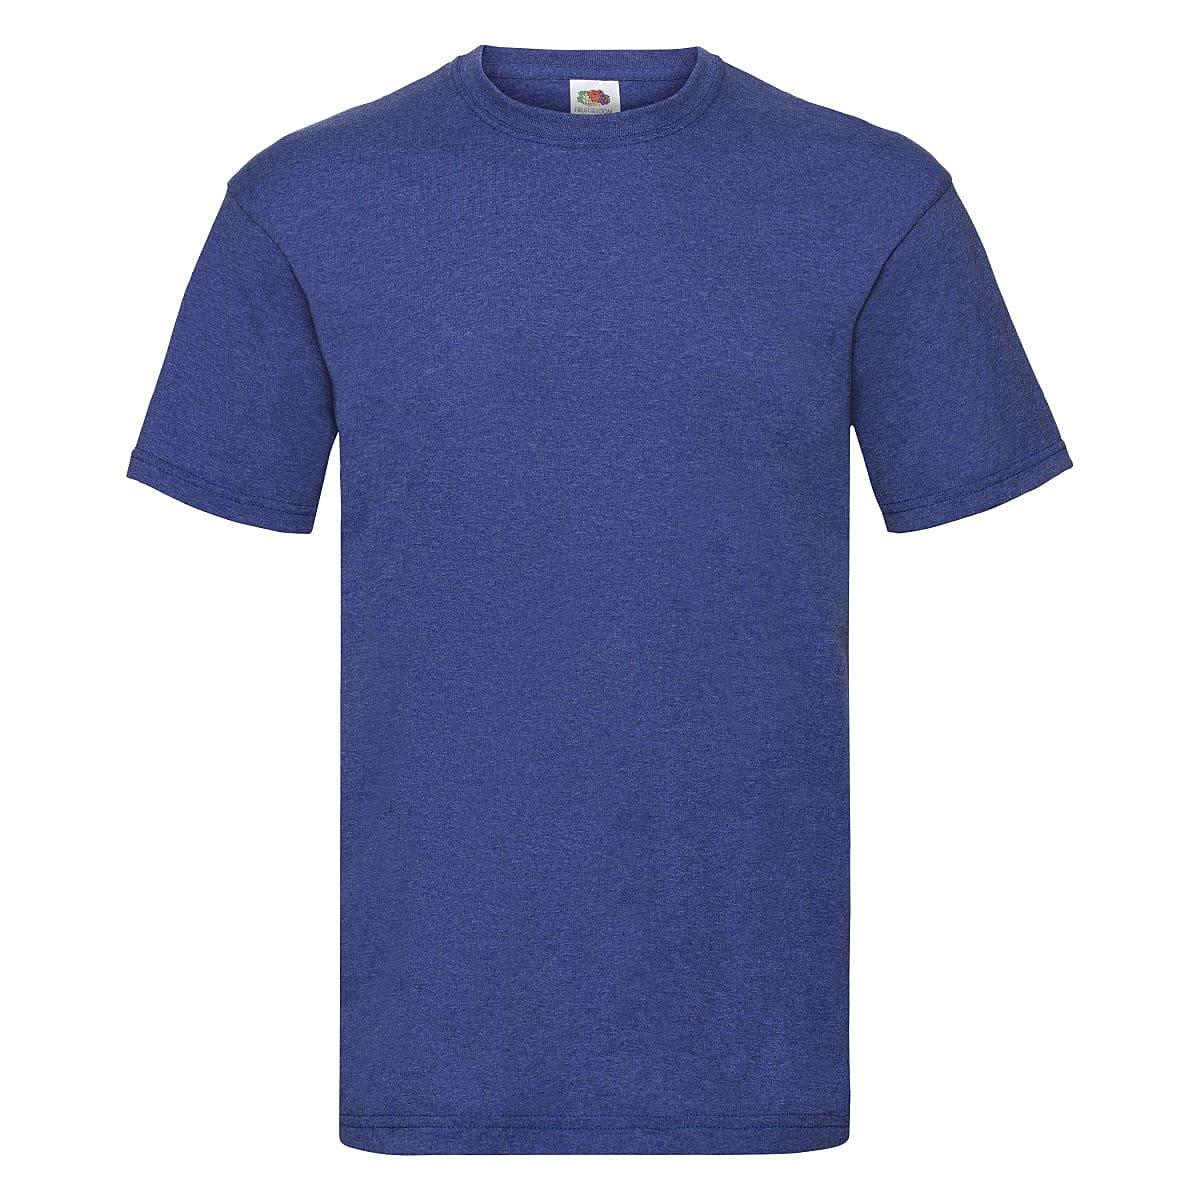 Fruit Of The Loom Valueweight T-Shirt in Retro Heather Royal (Product Code: 61036)